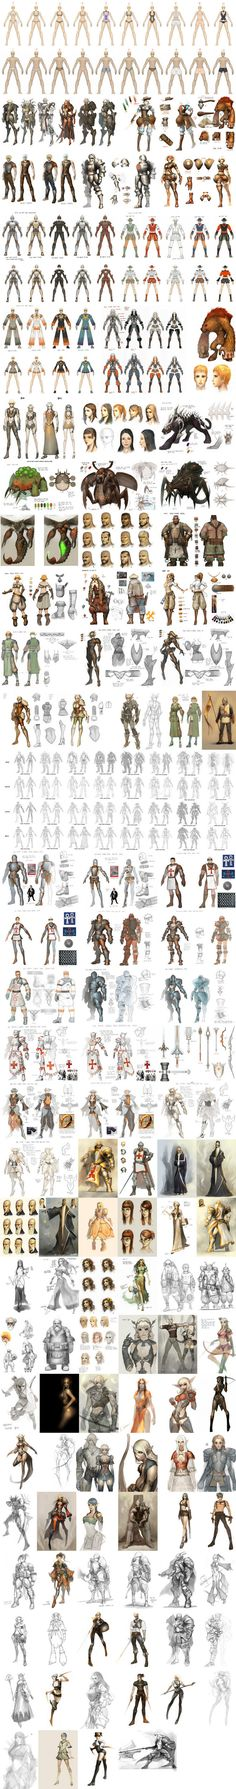 character design fashion clothing clothes armor chart | Create your own roleplaying game material w/ RPG Bard: www.rpgbard.com | Writing inspiration for Dungeons and Dragons DND D&D Pathfinder PFRPG Warhammer 40k Star Wars Shadowrun Call of Cthulhu Lord of the Rings LoTR + d20 fantasy science fiction scifi horror design | Not Trusty Sword art: click artwork for source